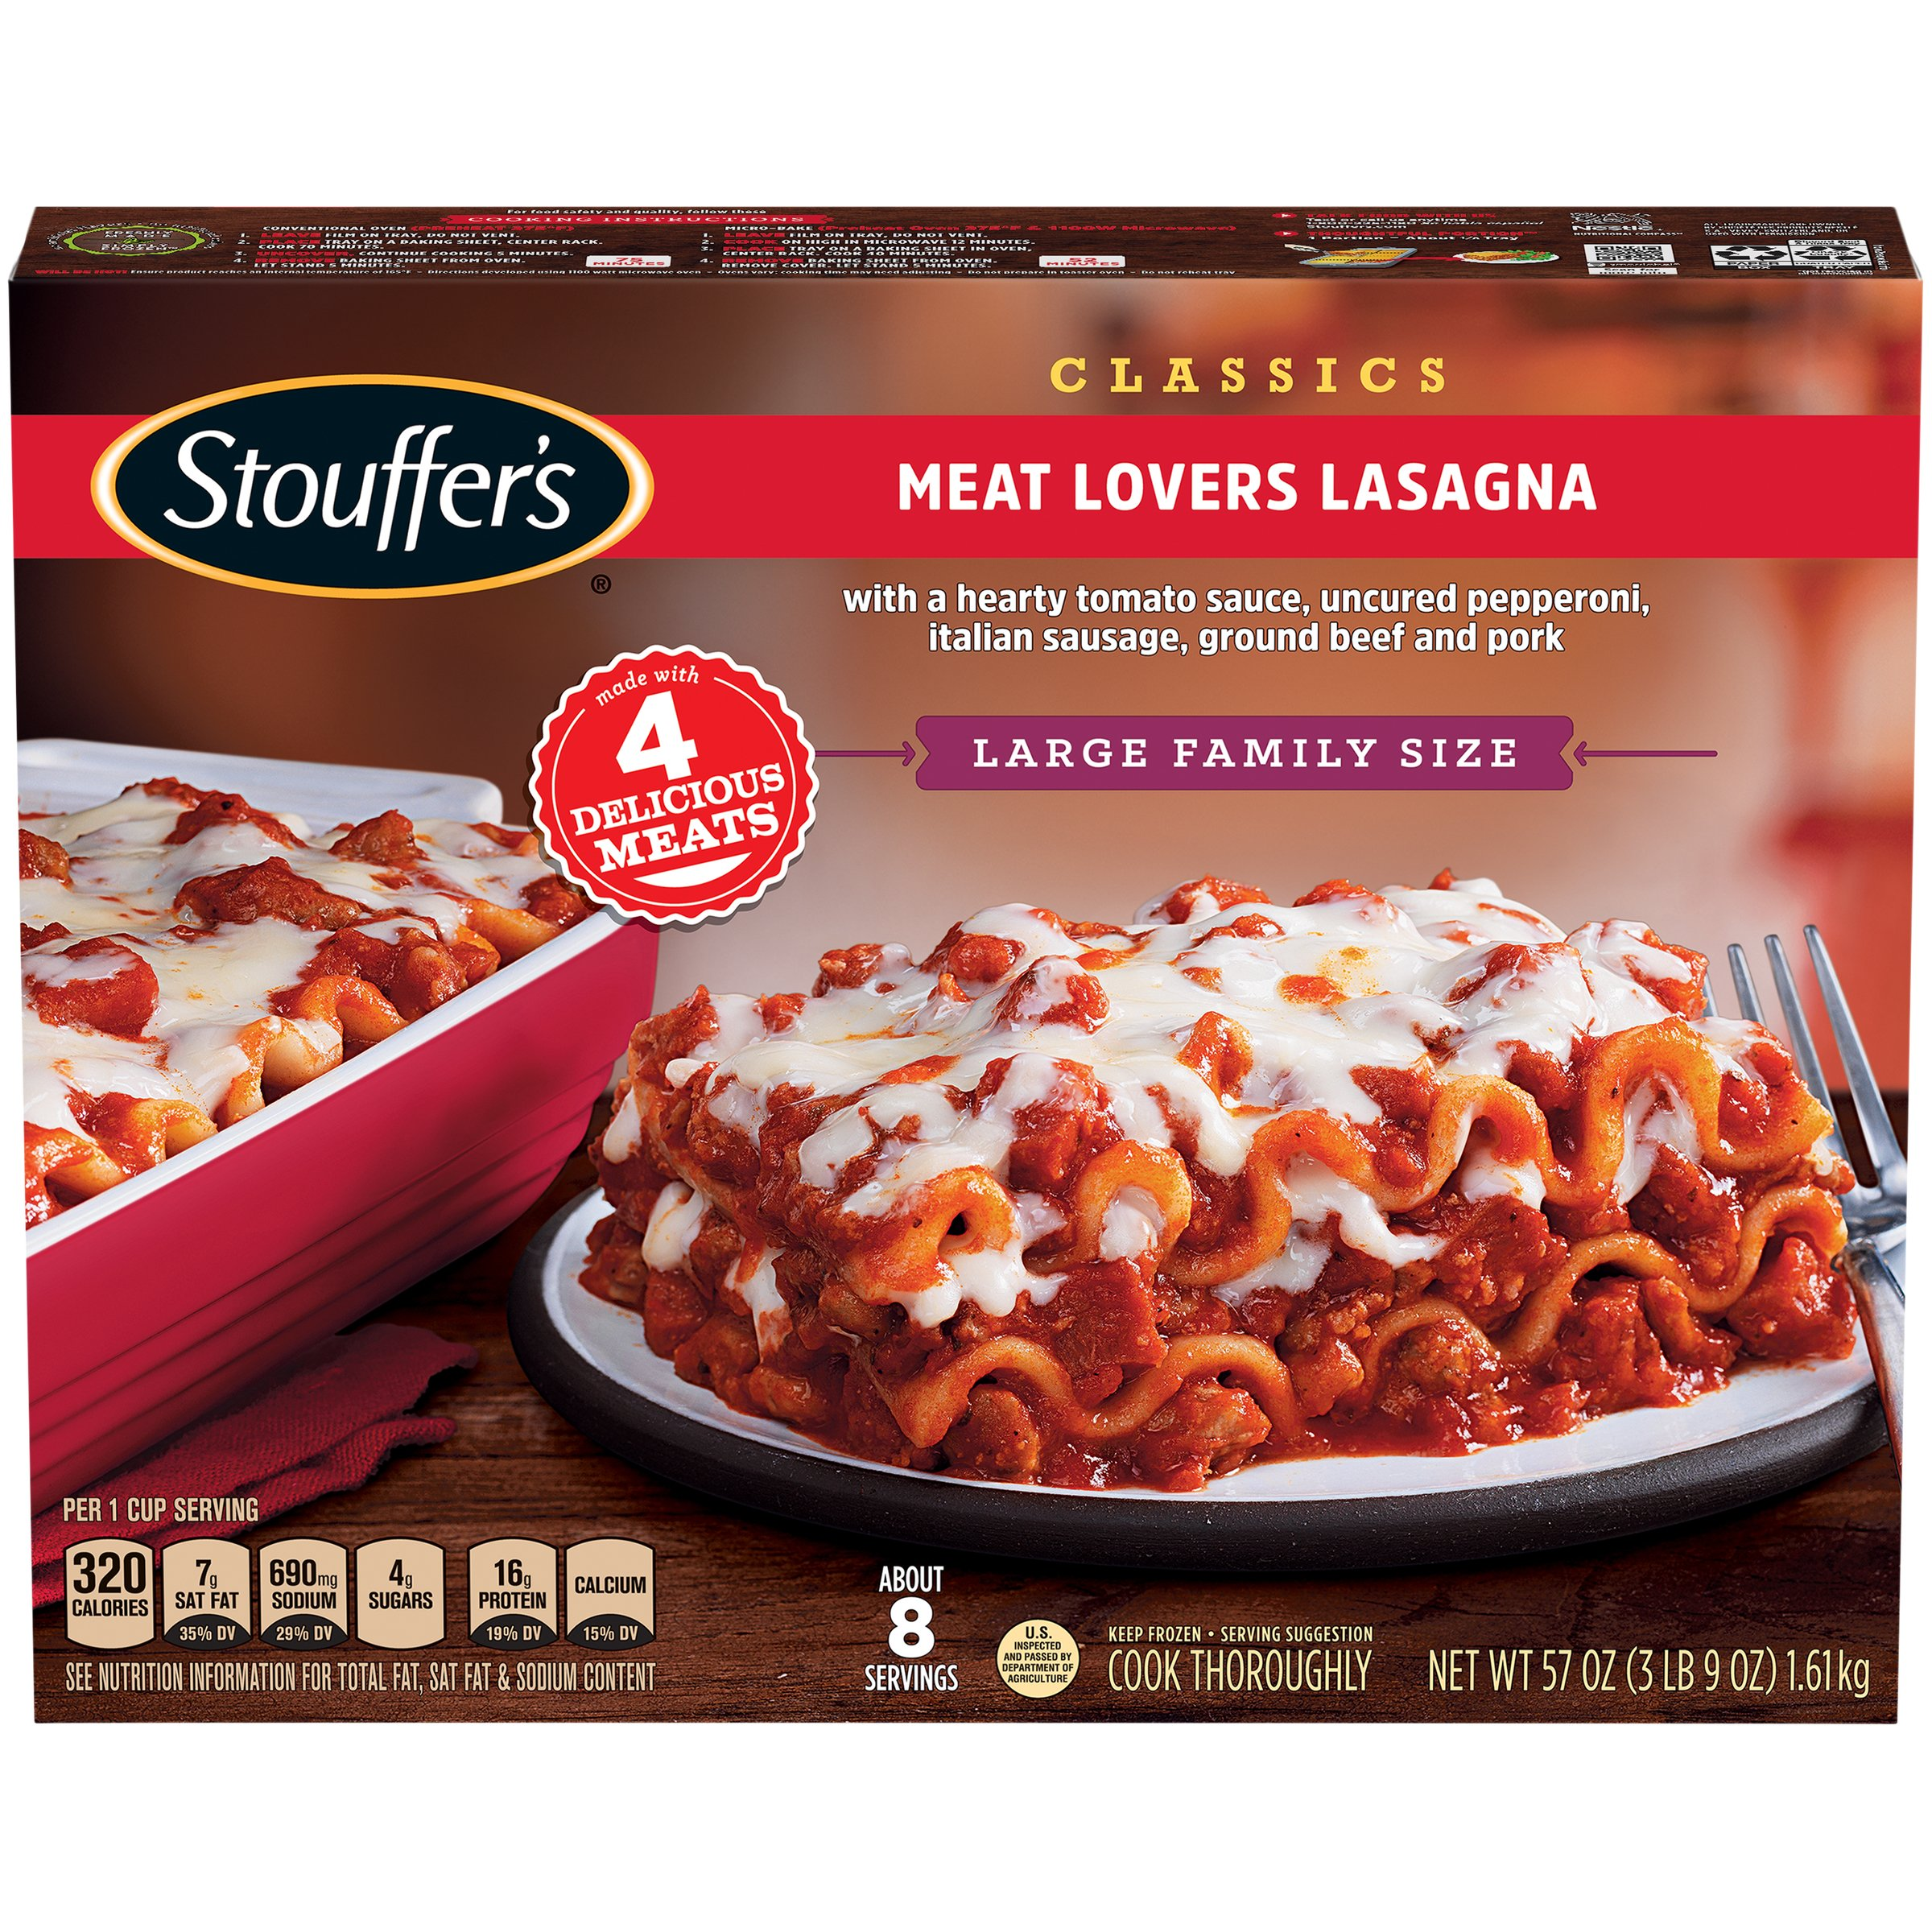 STOUFFER'S CLASSICS Large Family Size Meat Lovers Lasagna 57 oz. Box